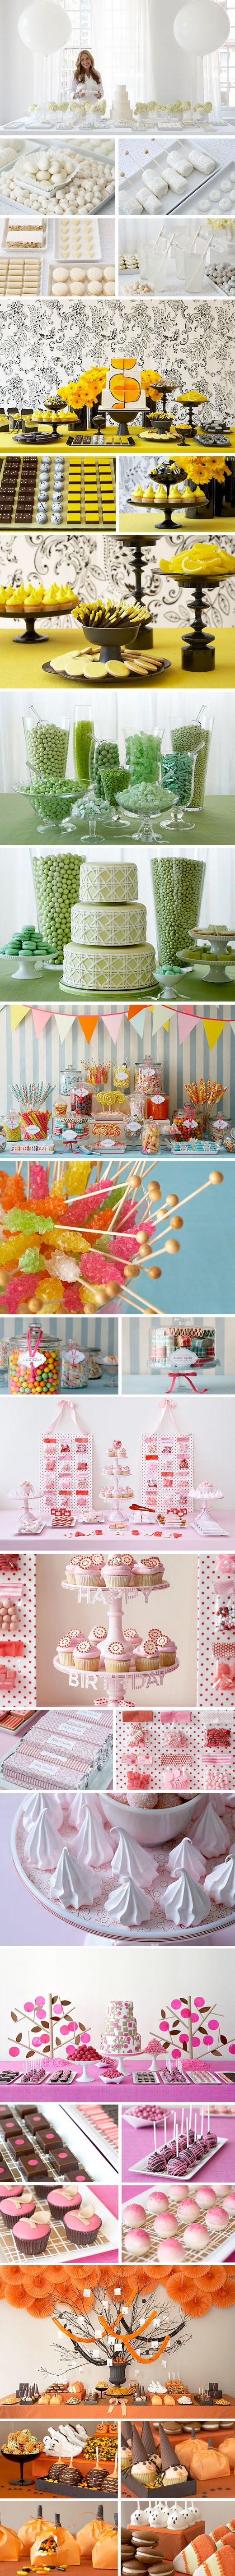 candy displays: Colors Combos, Creative Ideas, Candy Bar, Fun Creative, Colors Schemes, Fun Ideas, Parties Ideas, Parties Theme, Atlas Events